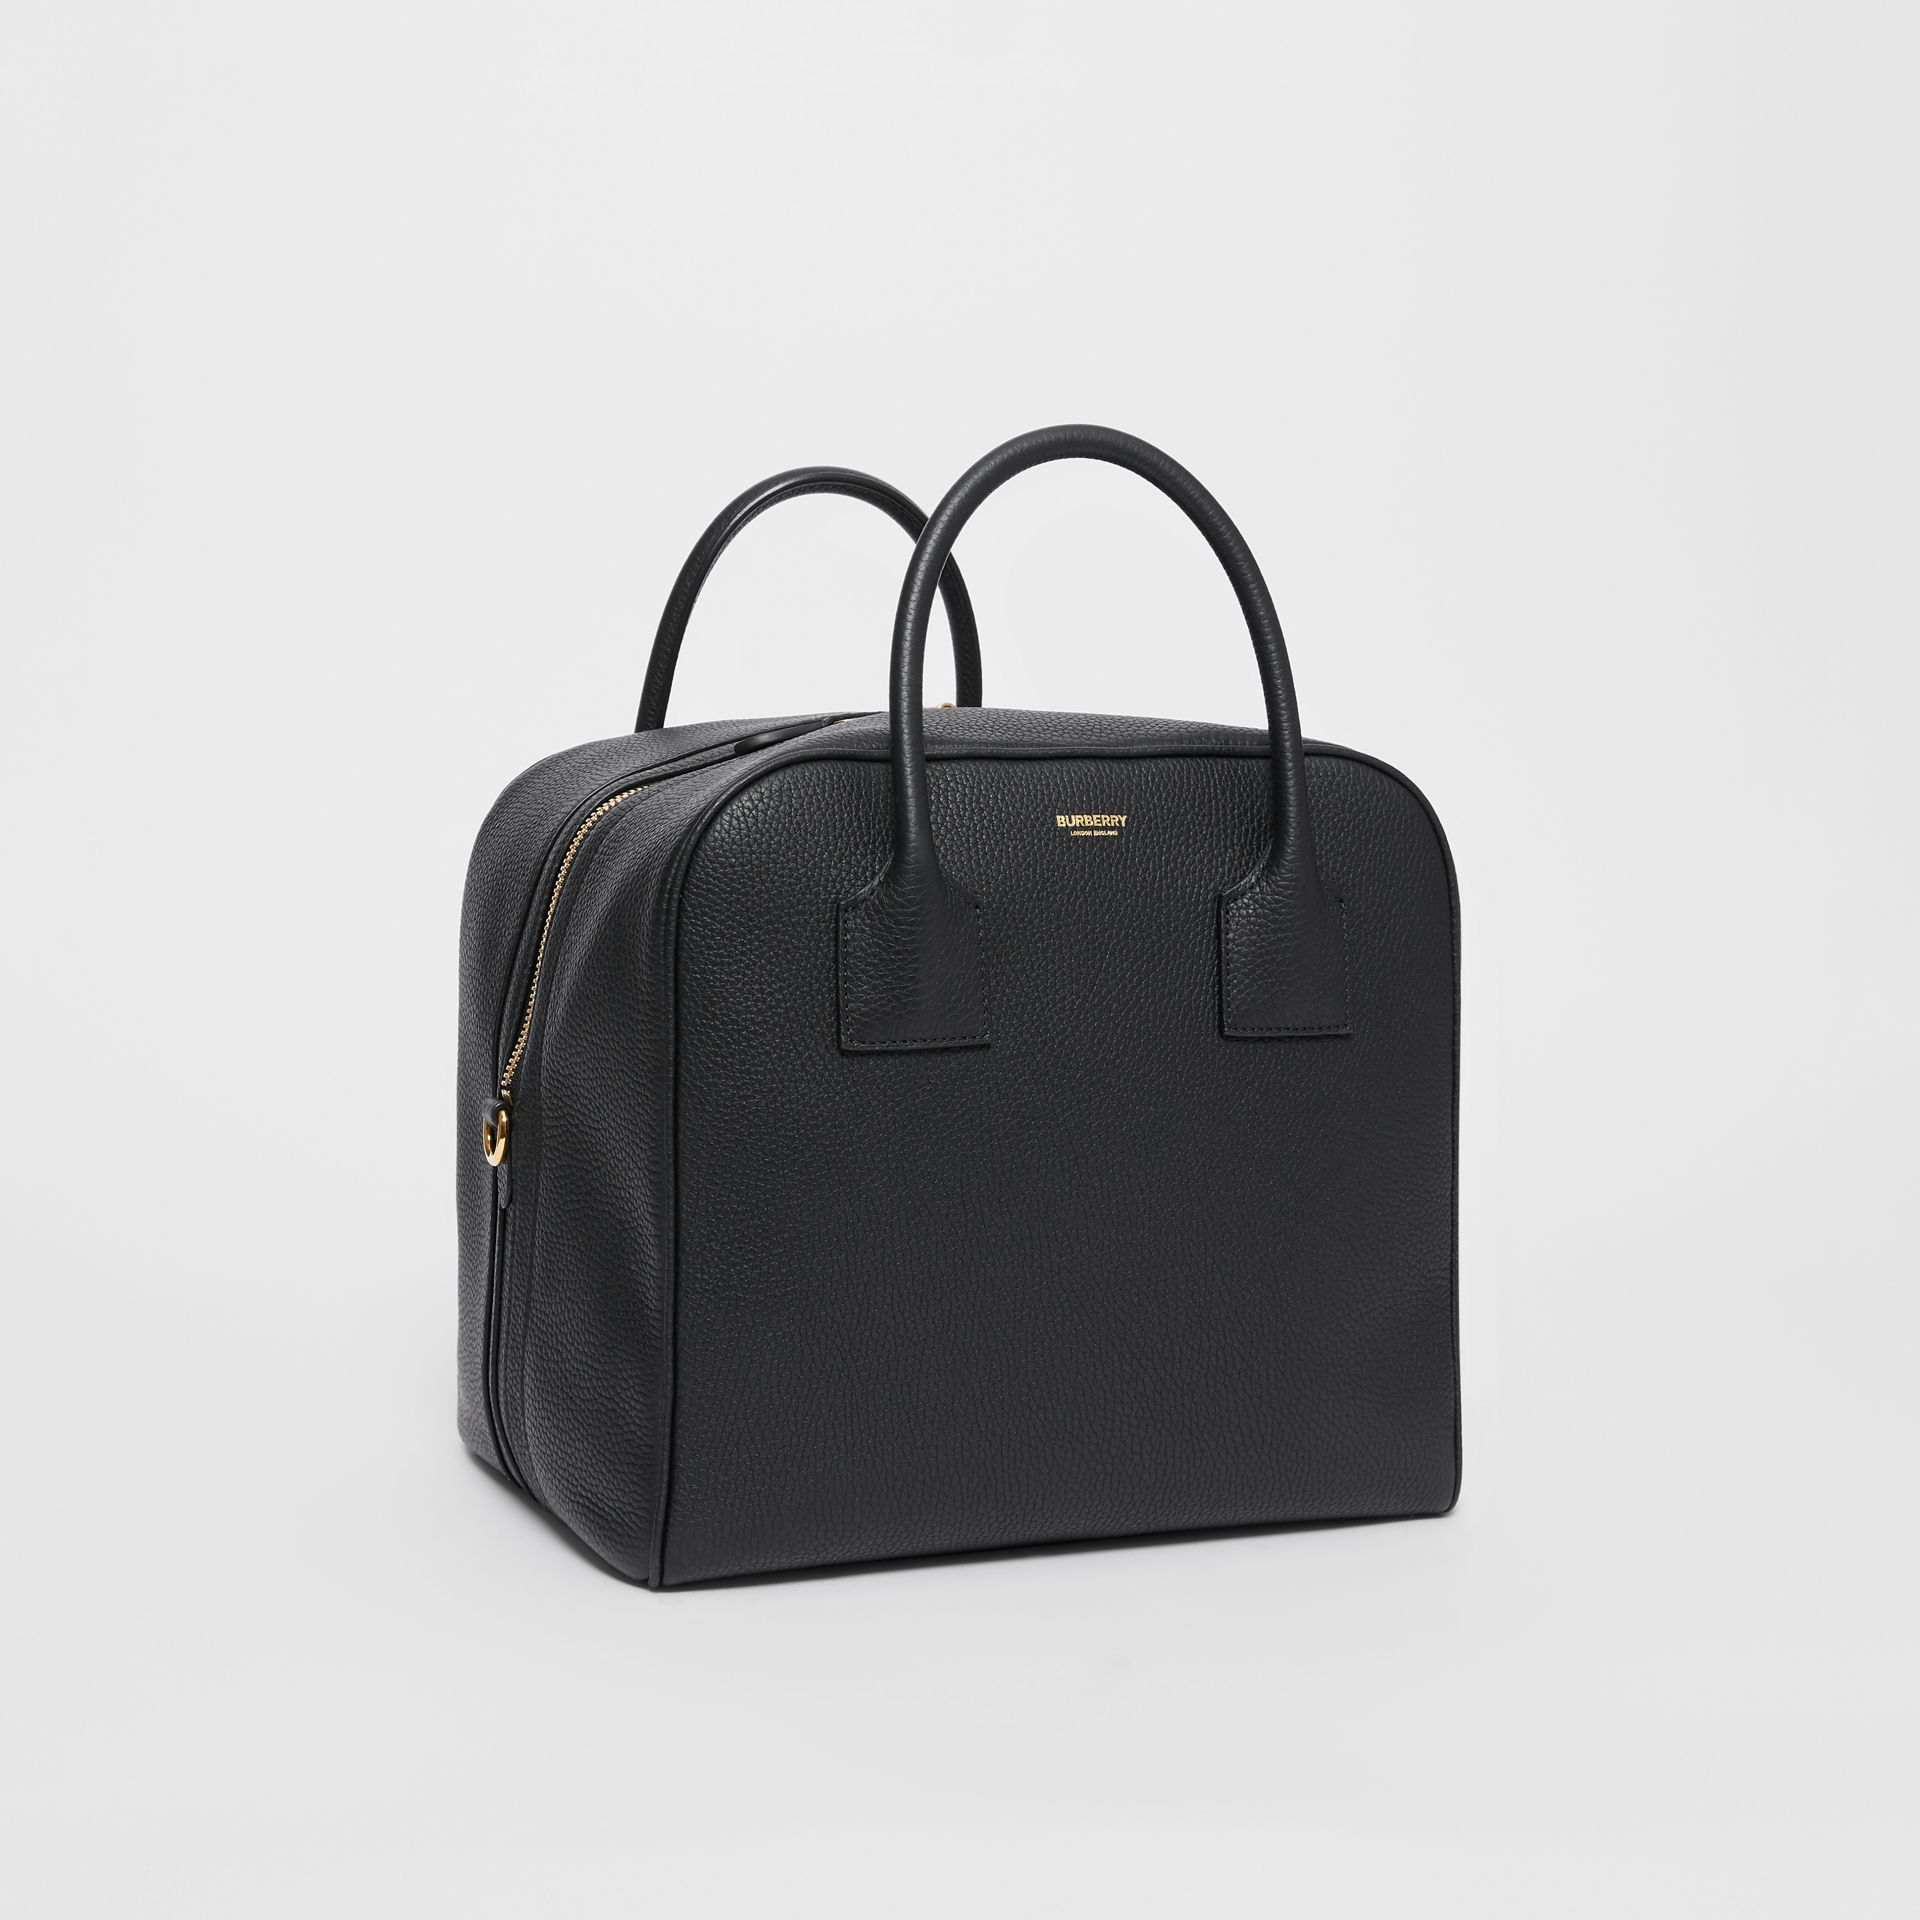 Medium Leather Cube Bag in Black - Women | Burberry Australia - gallery image 6